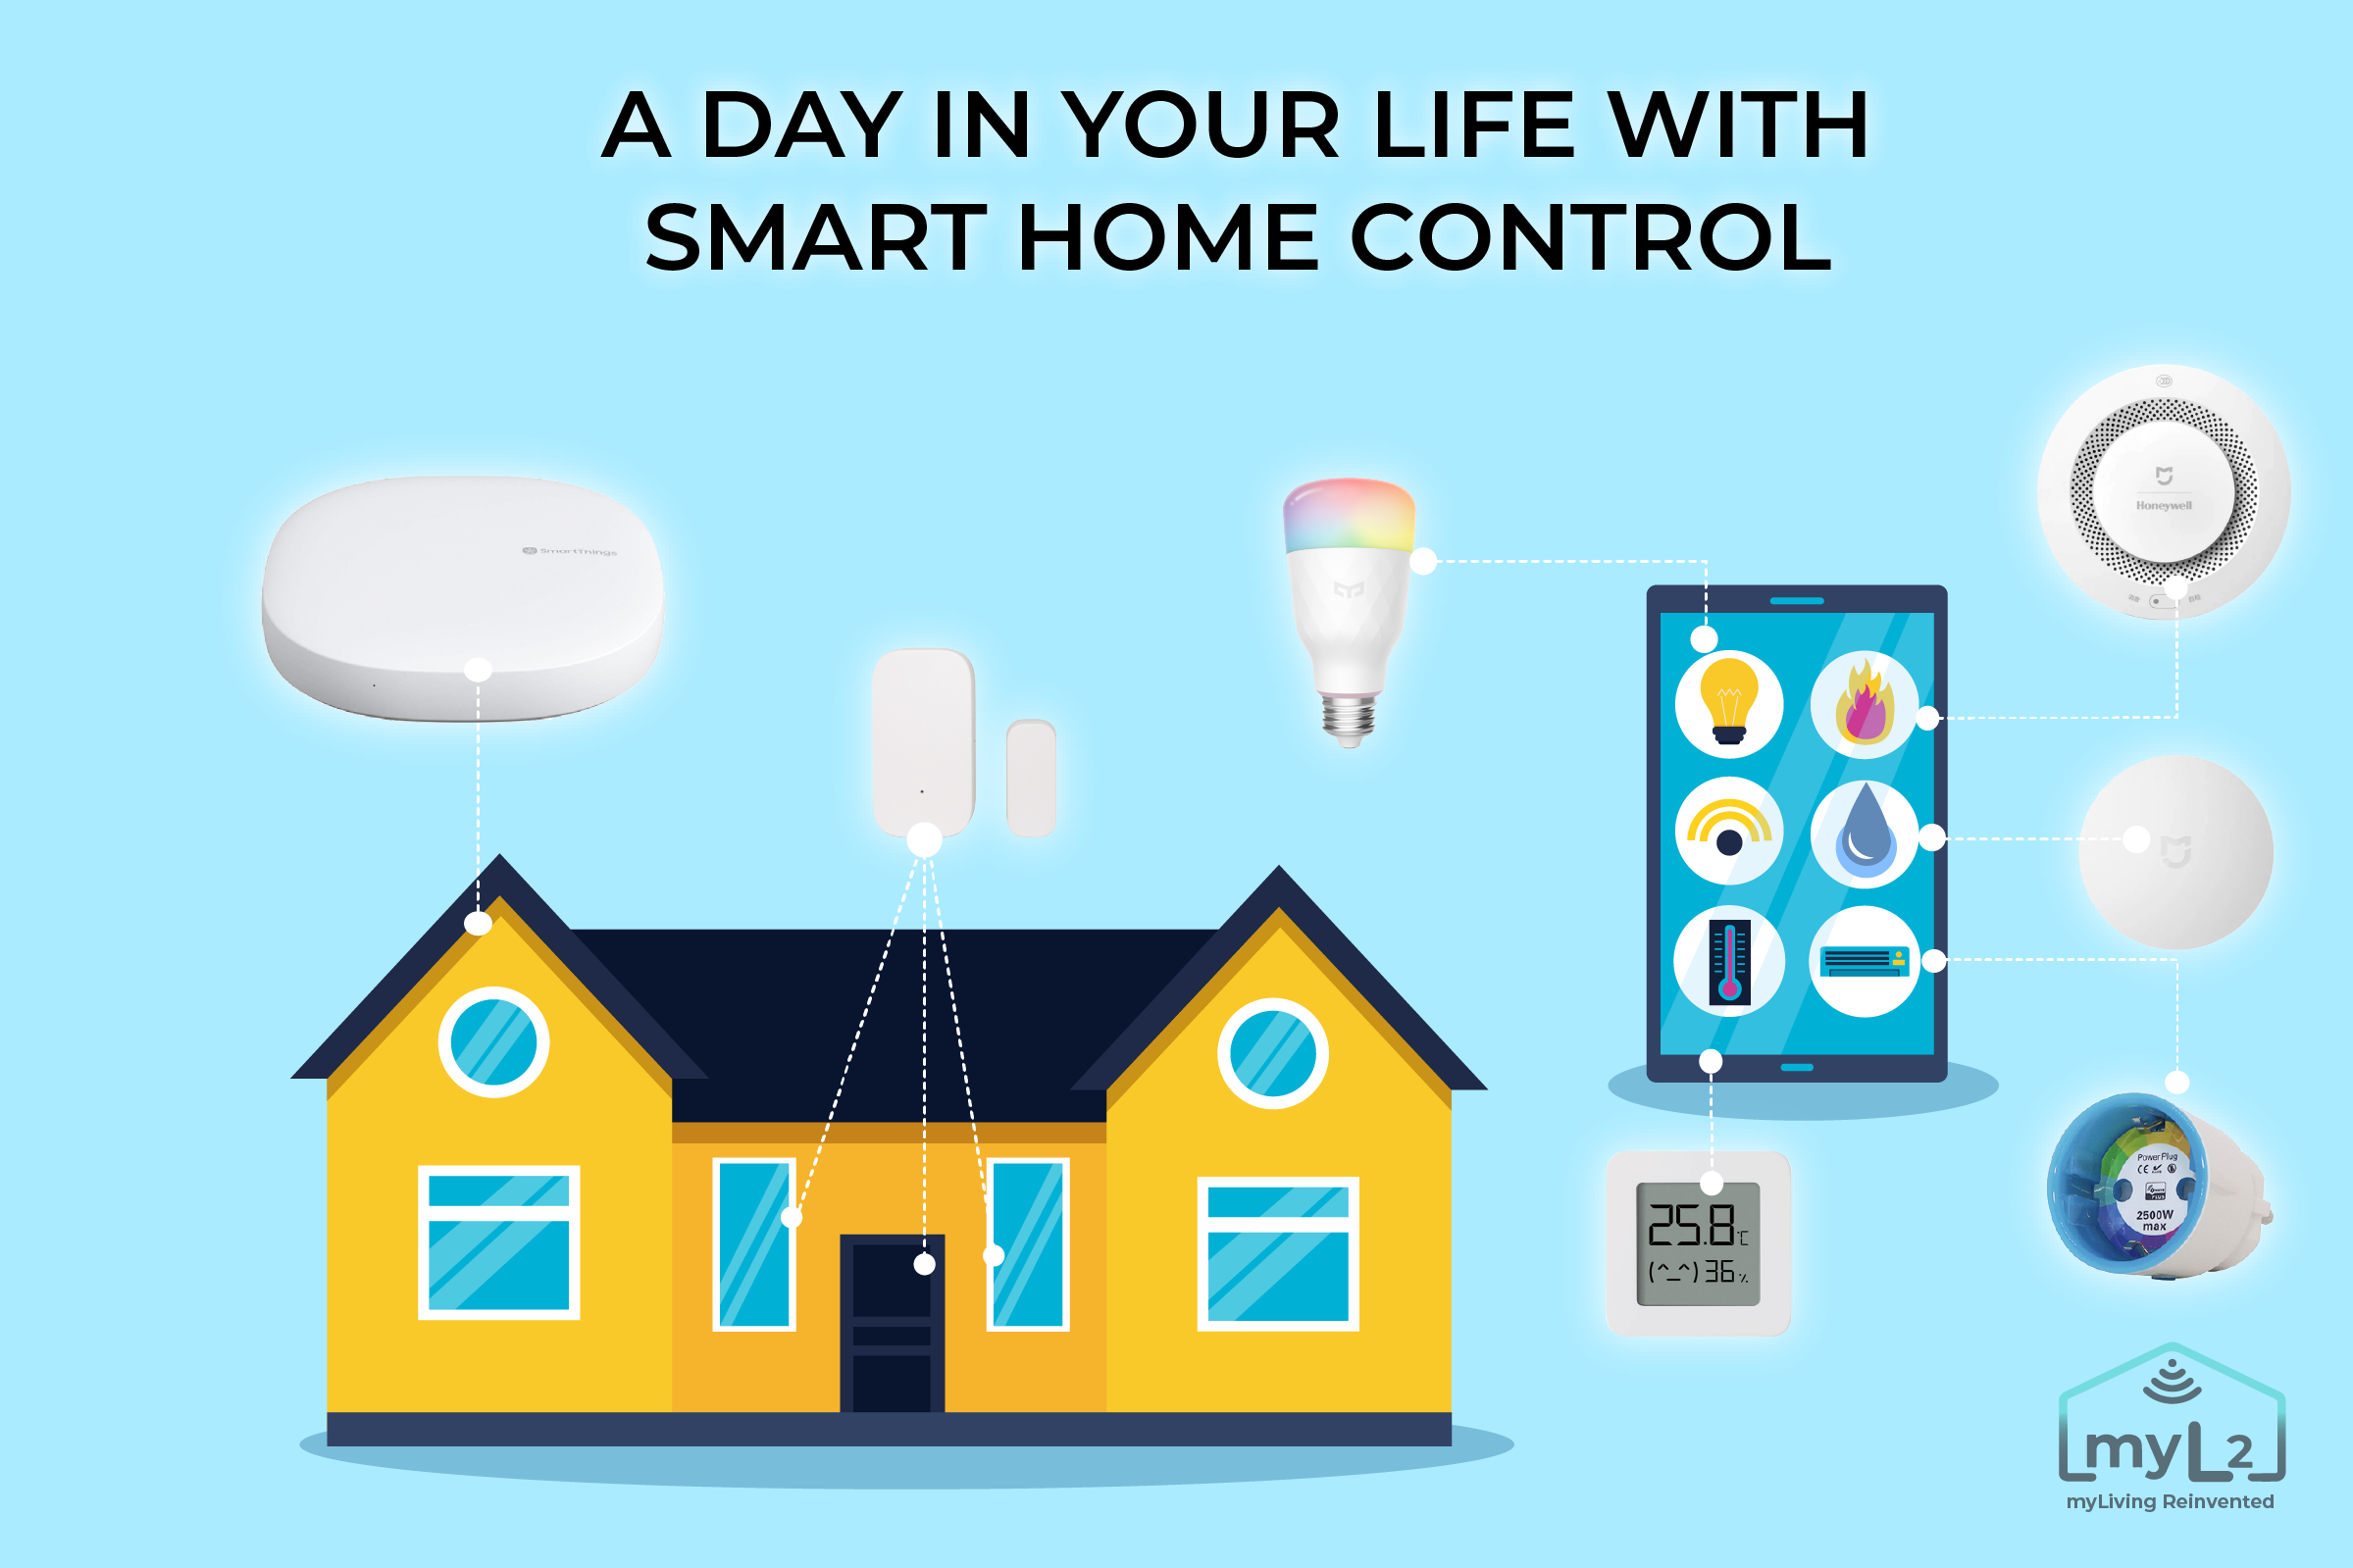 a day in your life with smart home control